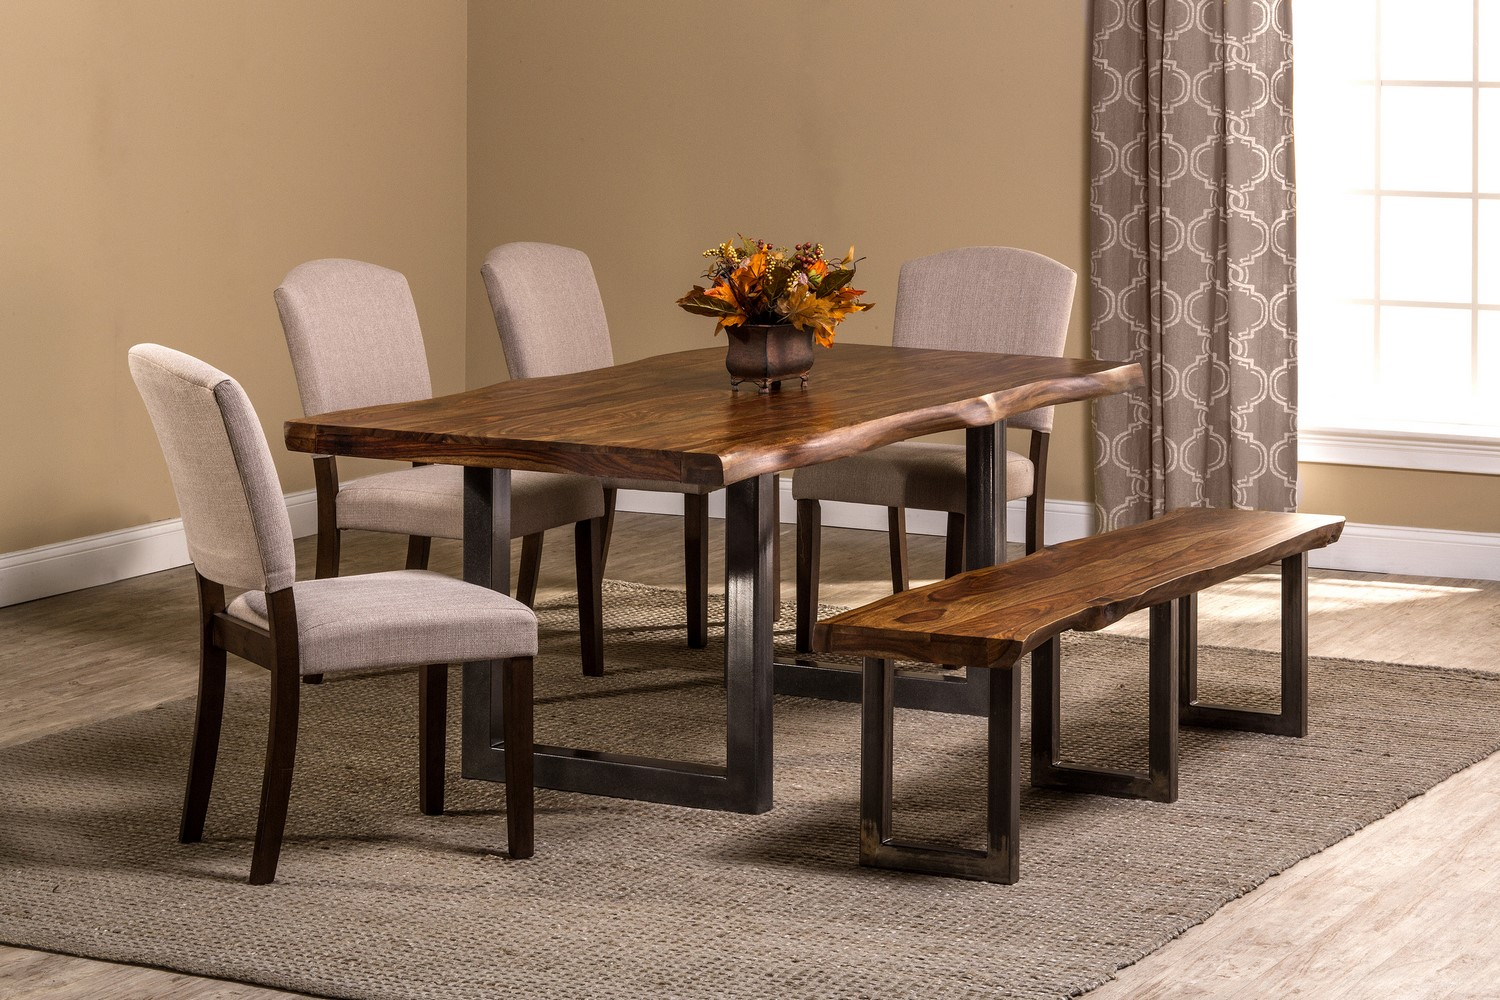 New arrival hillsdale emerson 6 piece 80 39 rectangular for Dining room sets 6 piece